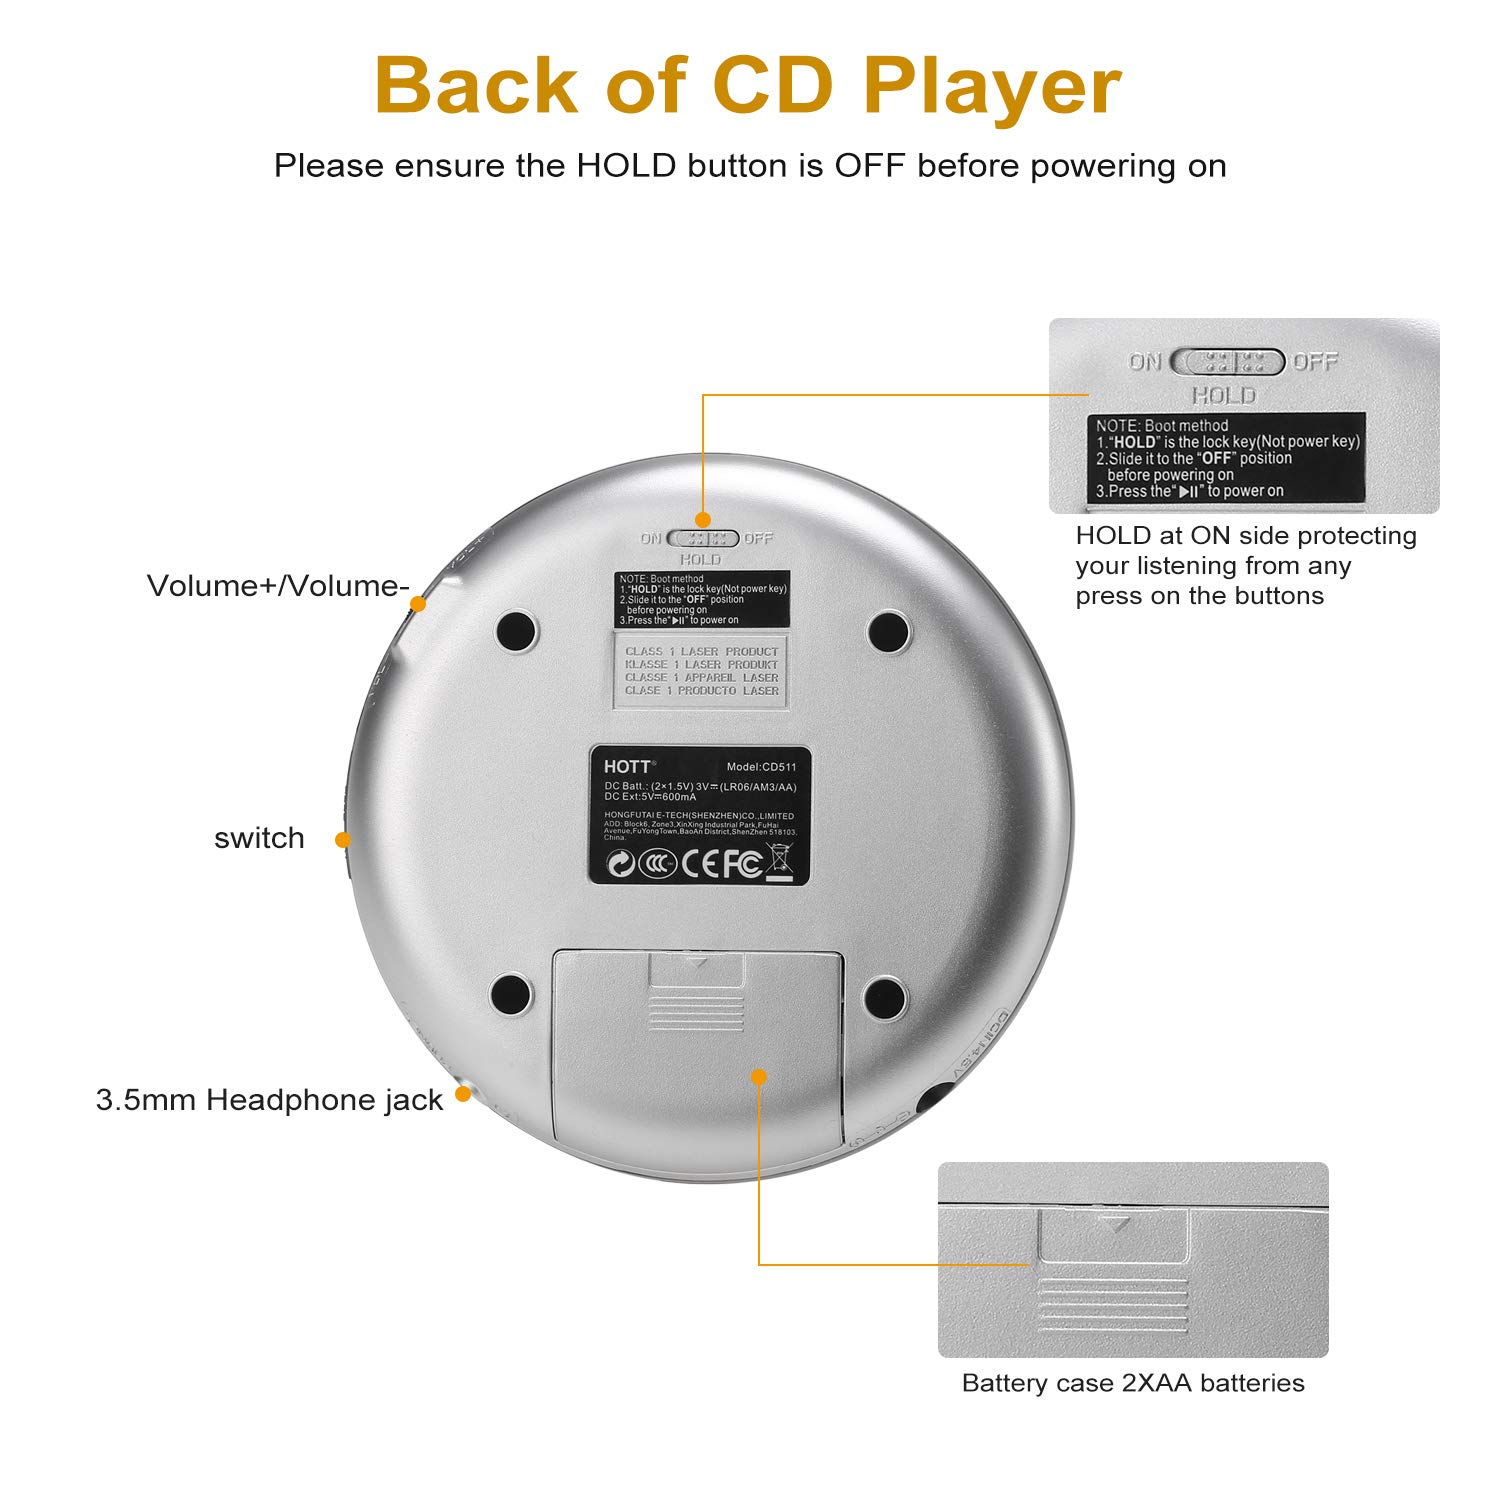 Portable CD Player, HOTT Personal Compact Disc Music Player with Headphones and USB Cable, Small Walkman with Anti-Skip/Anti-Shock and LED Display (Silver)